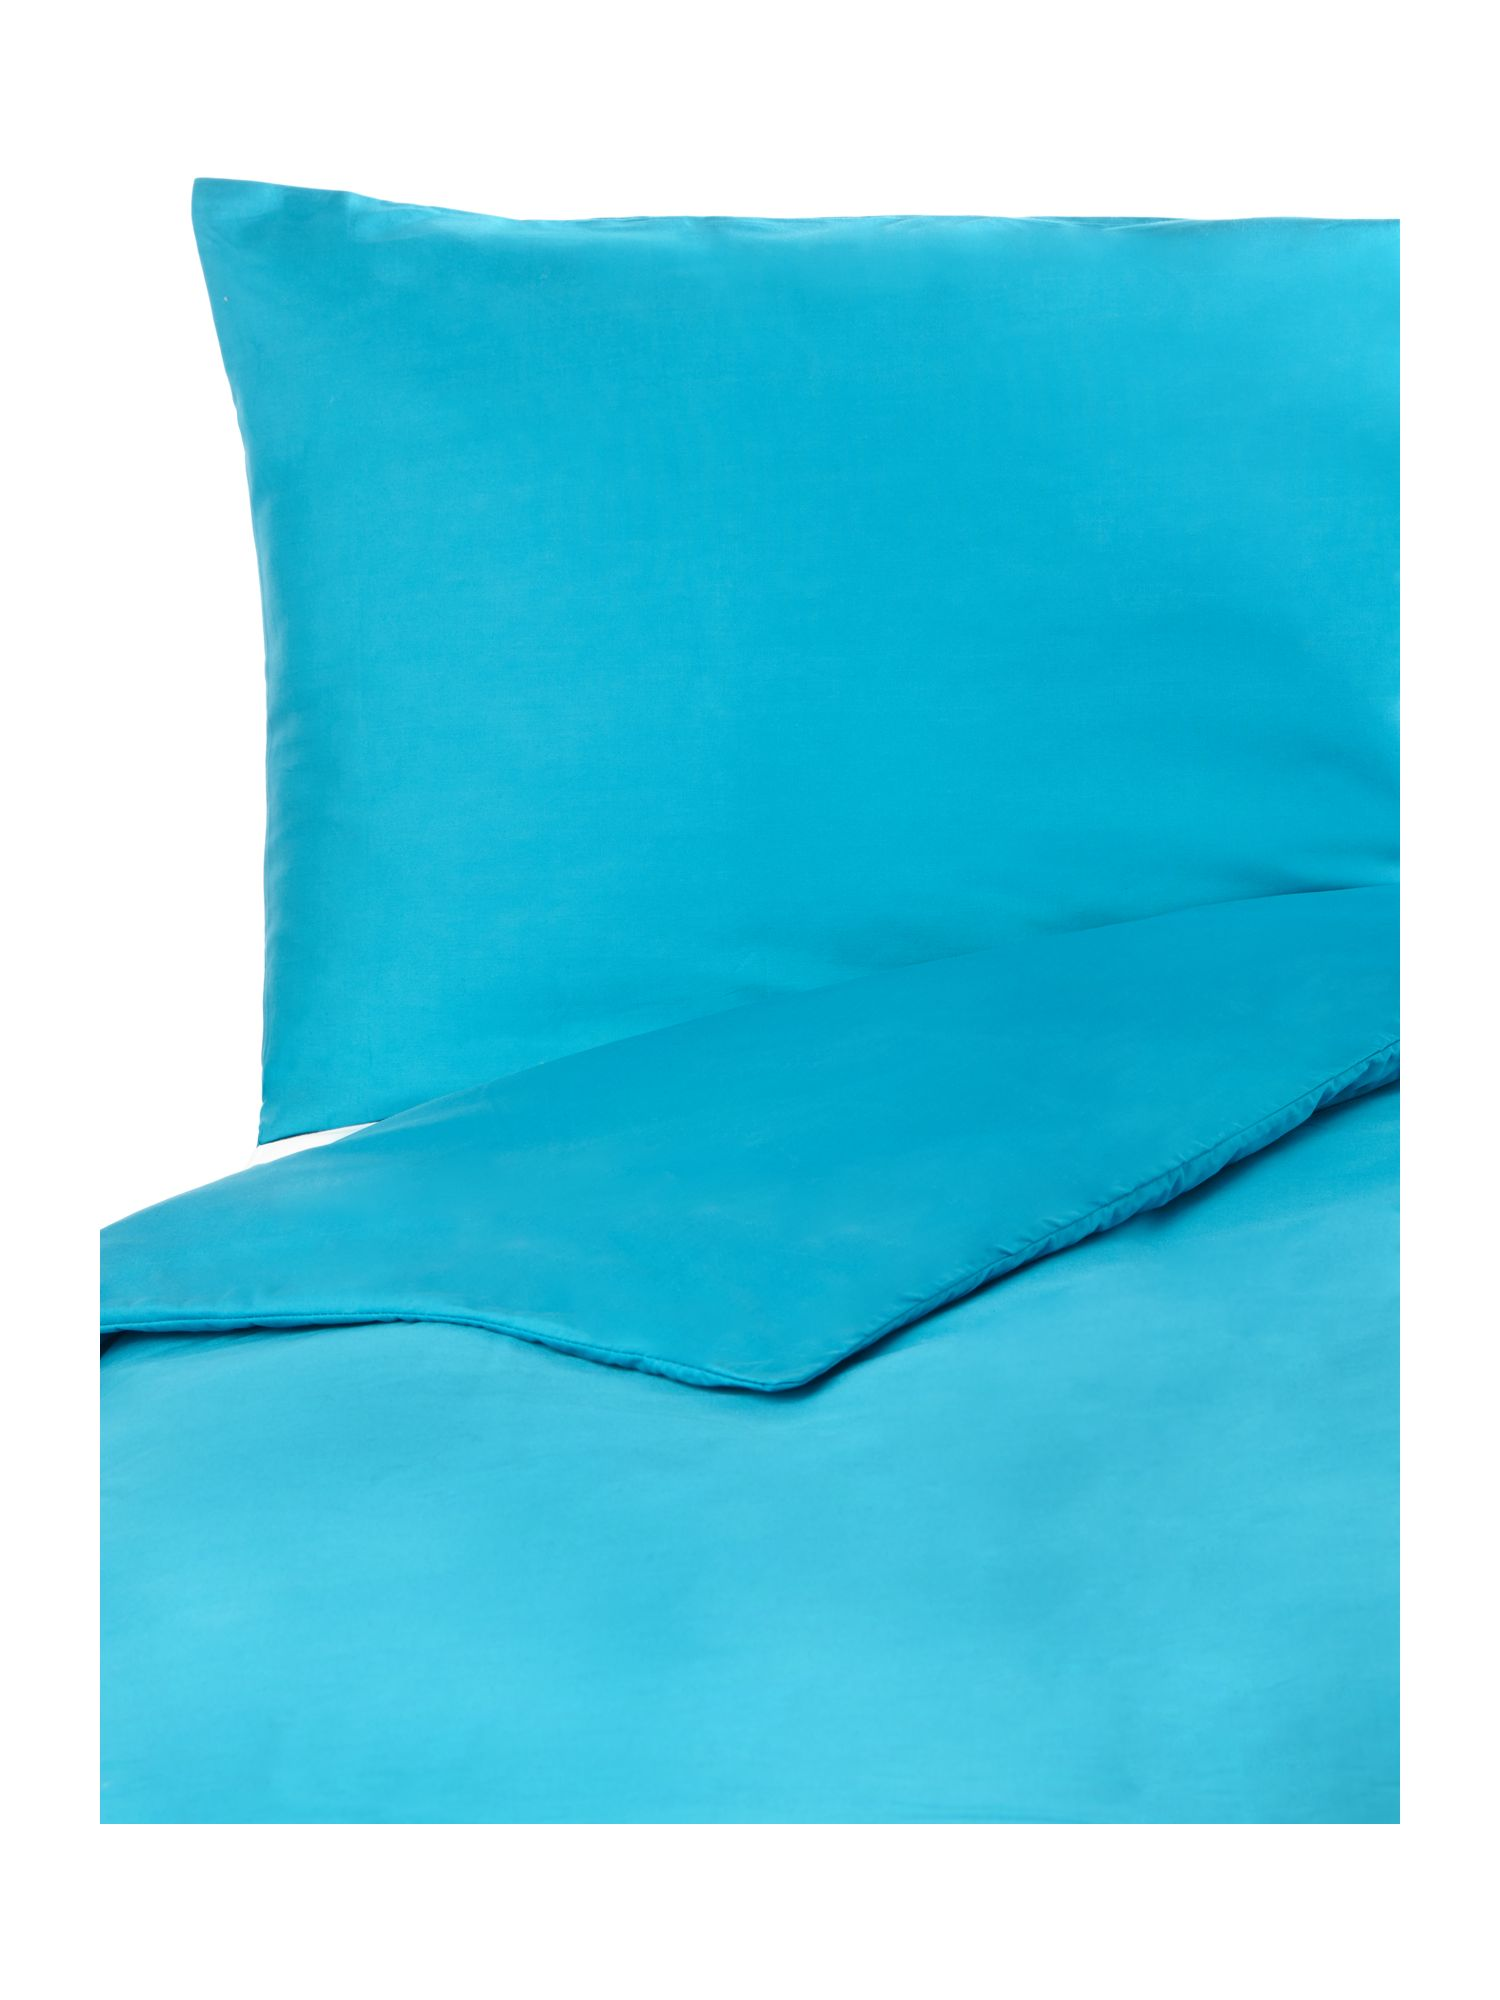 100% cotton plain dye bedlinen in teal